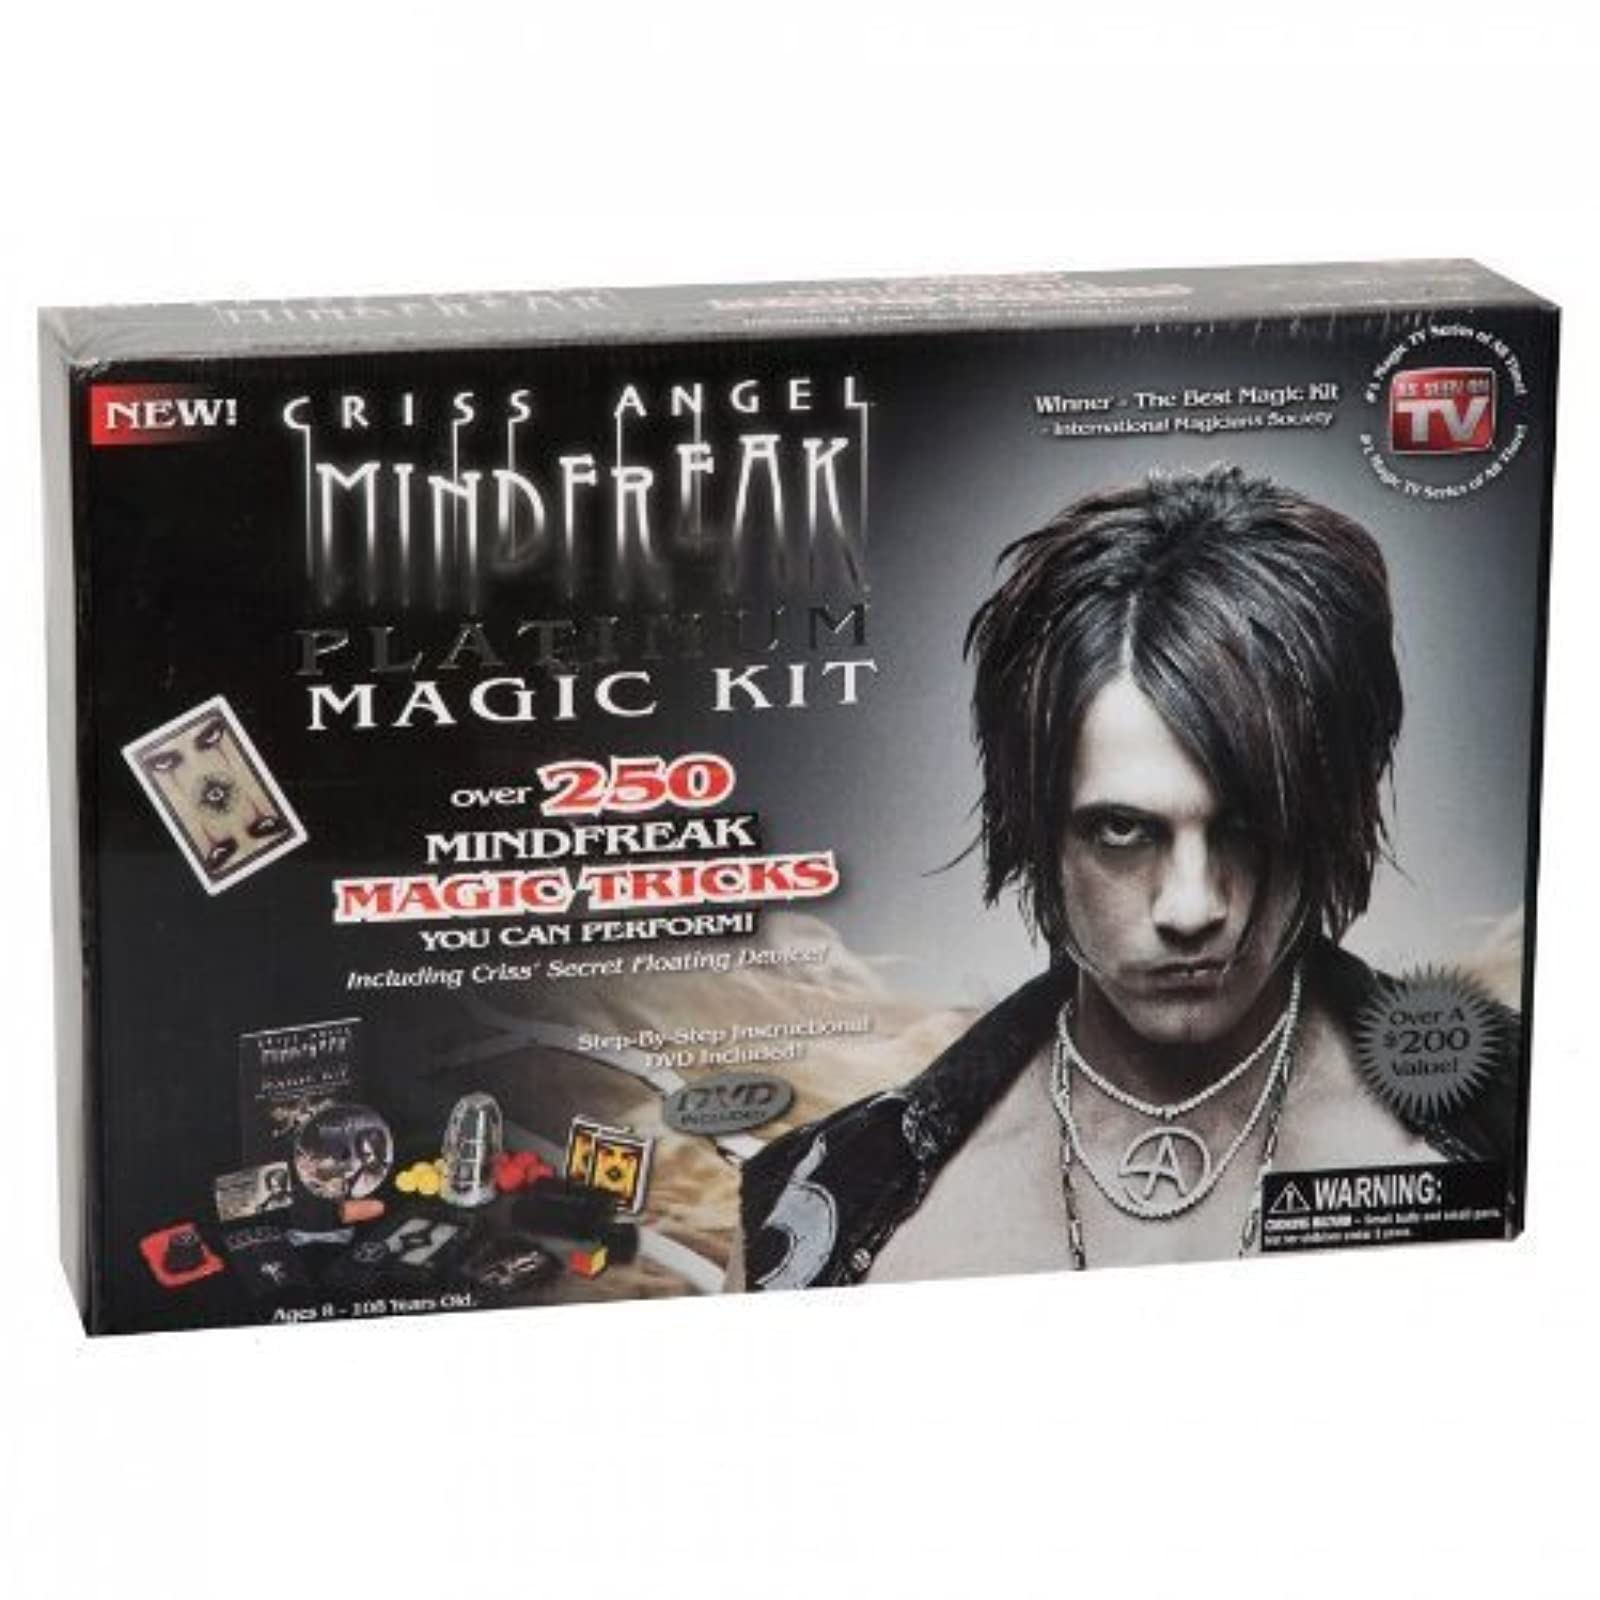 Criss Angel Mindfreak Platinum Magic Kit Magician Show Set 250 Tricks And DVD To